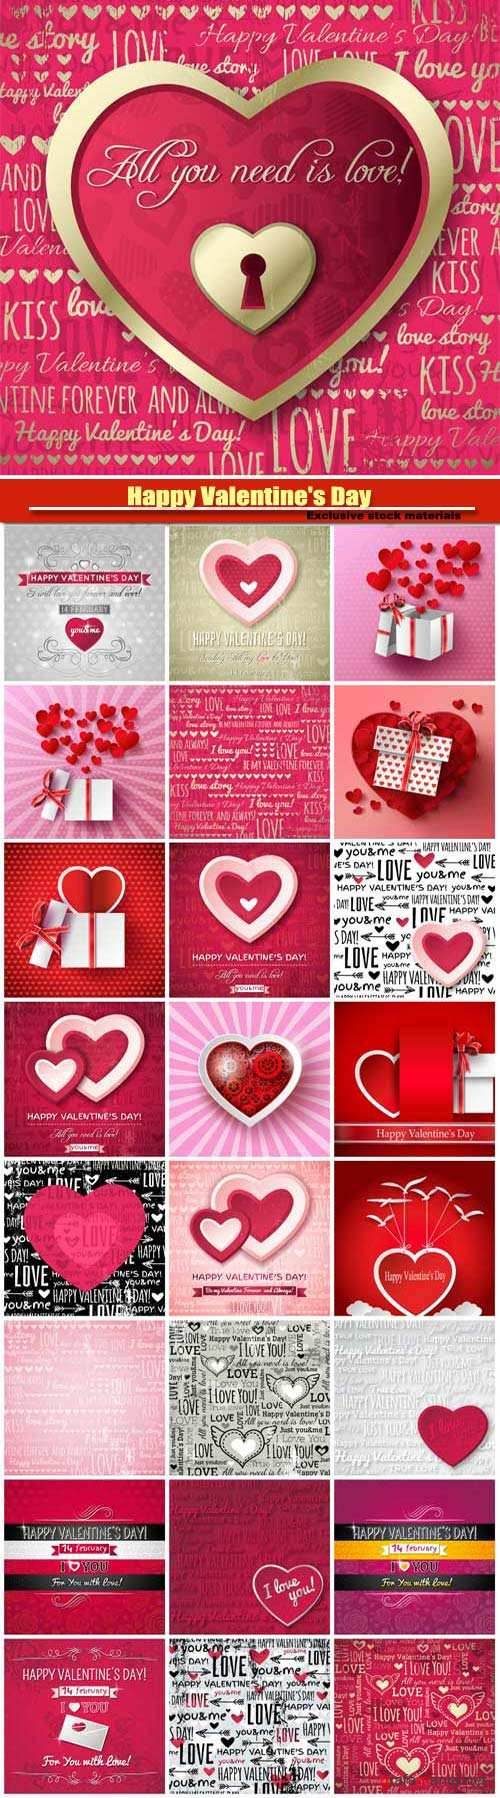 Happy Valentine's Day vector, hearts, romance, love #9